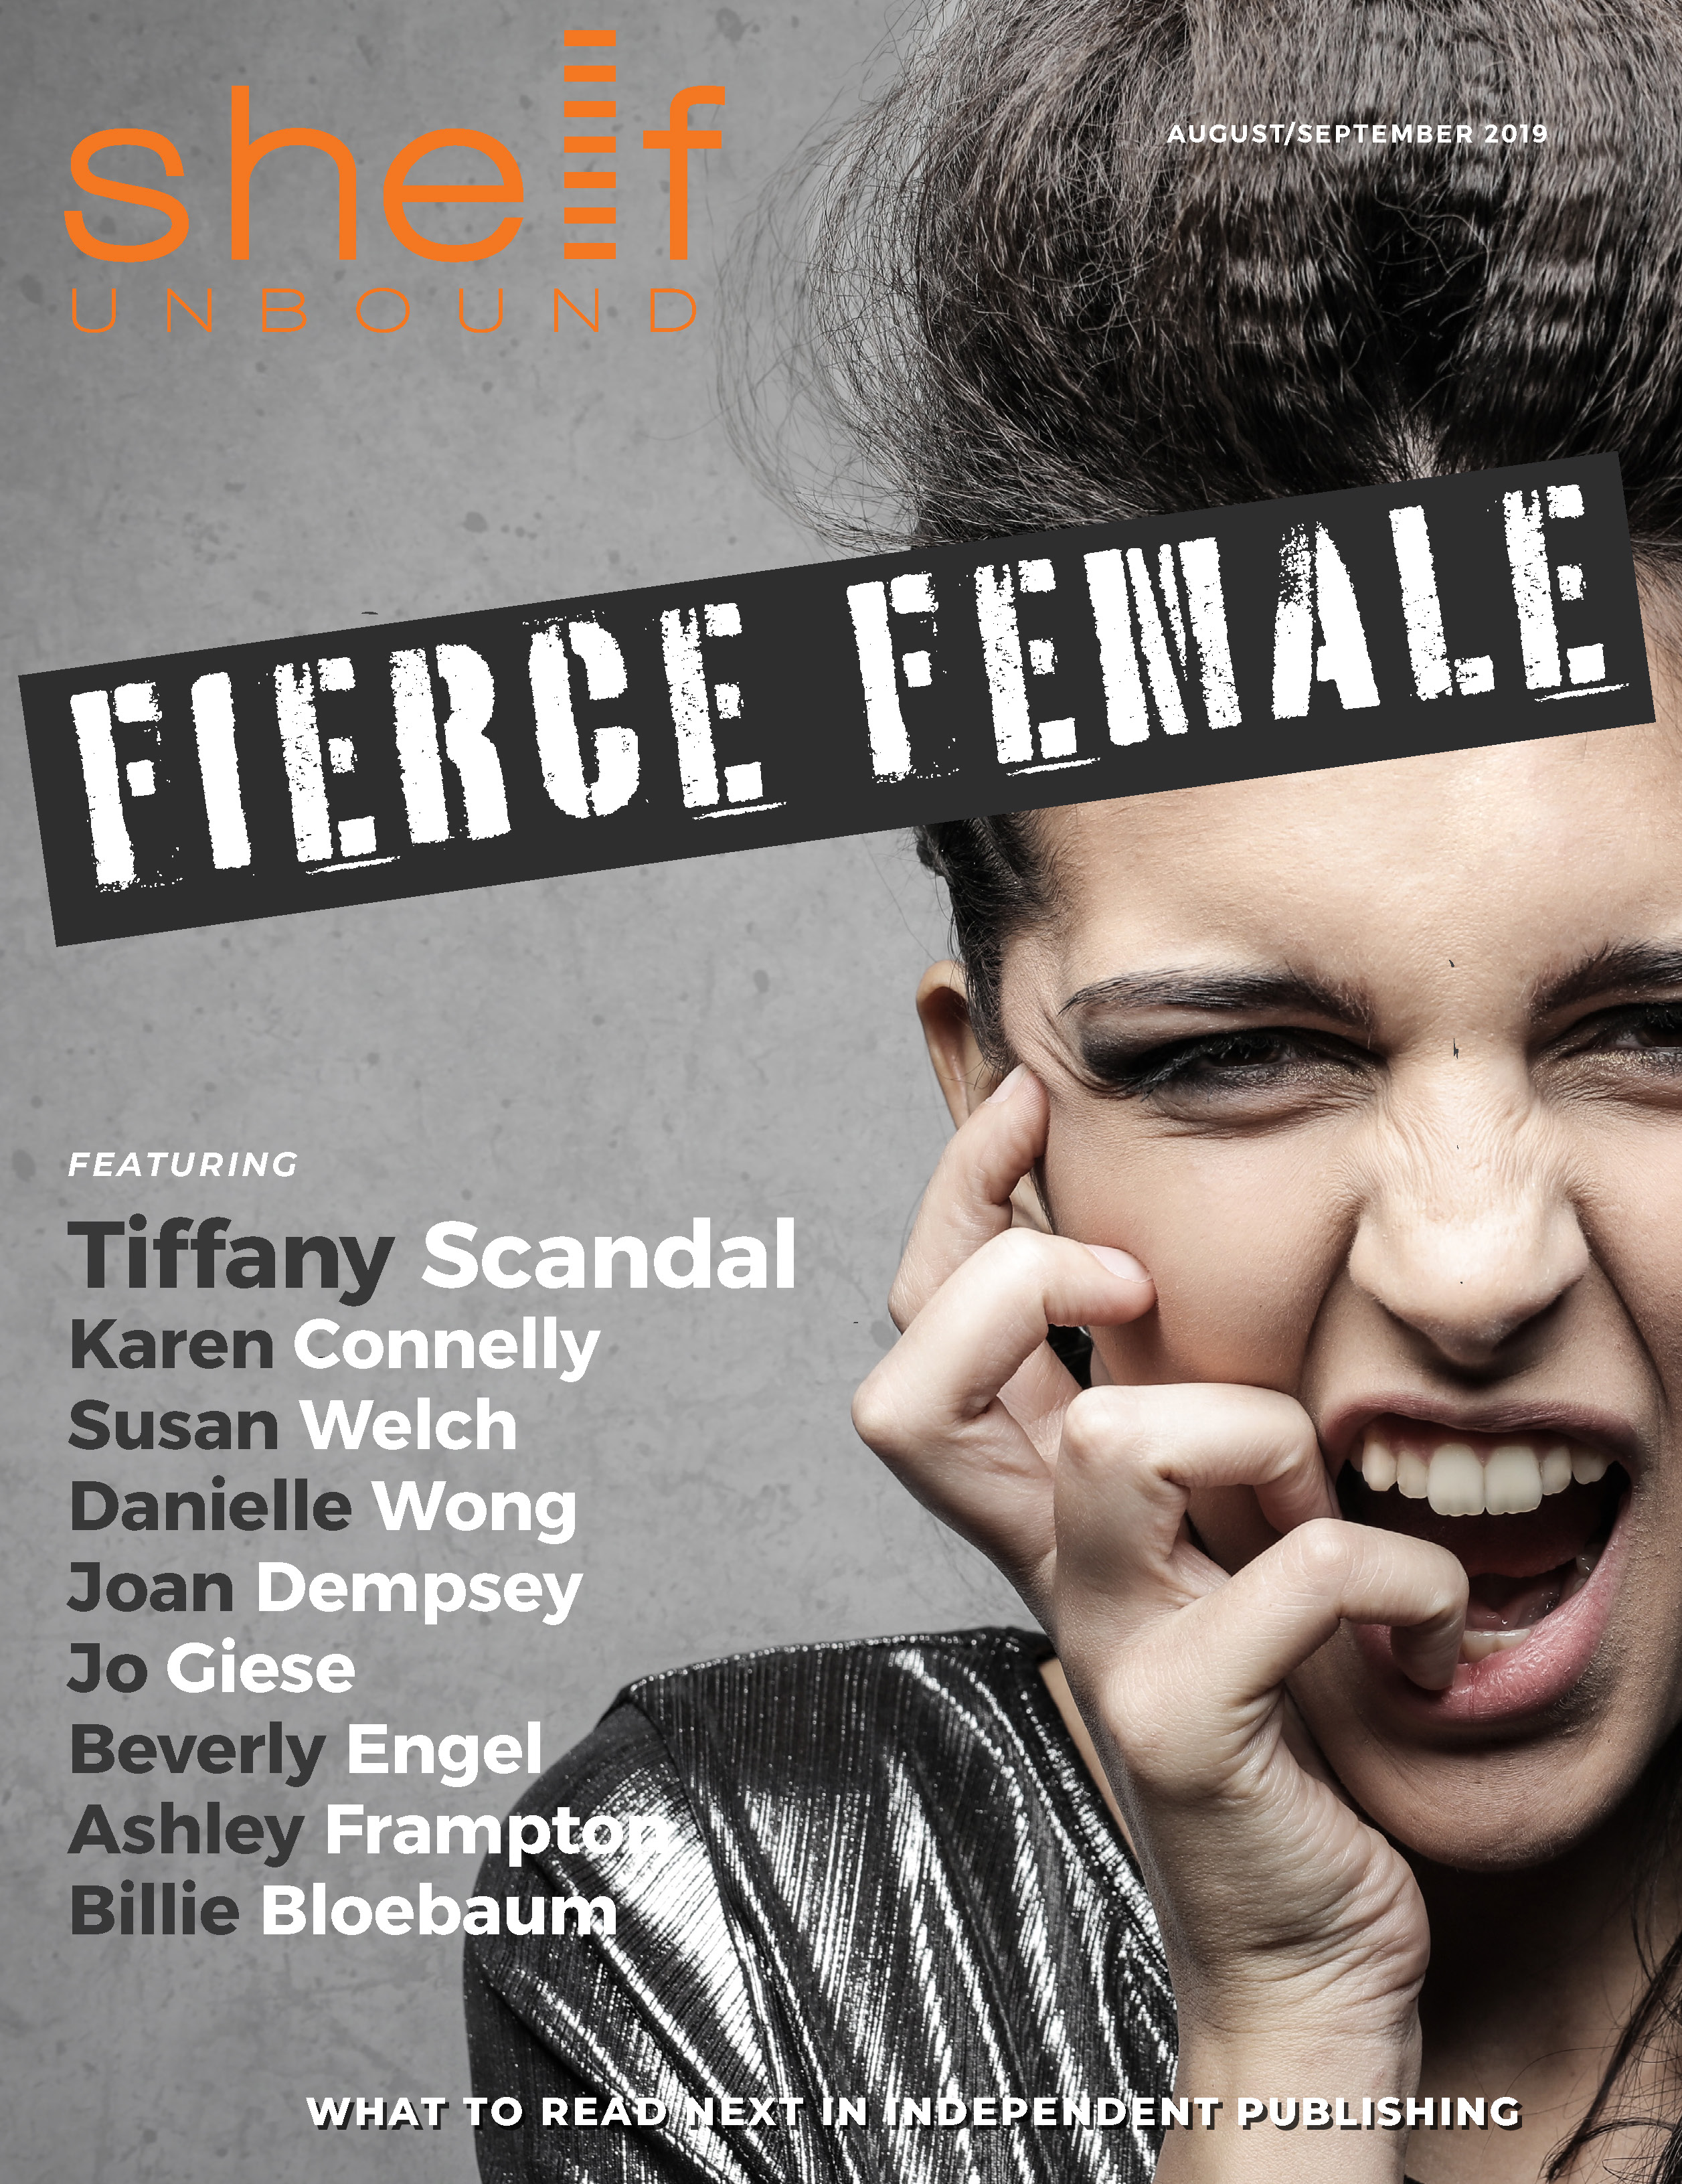 Fierce-Female-Issue- 2019-August-September_Page_1